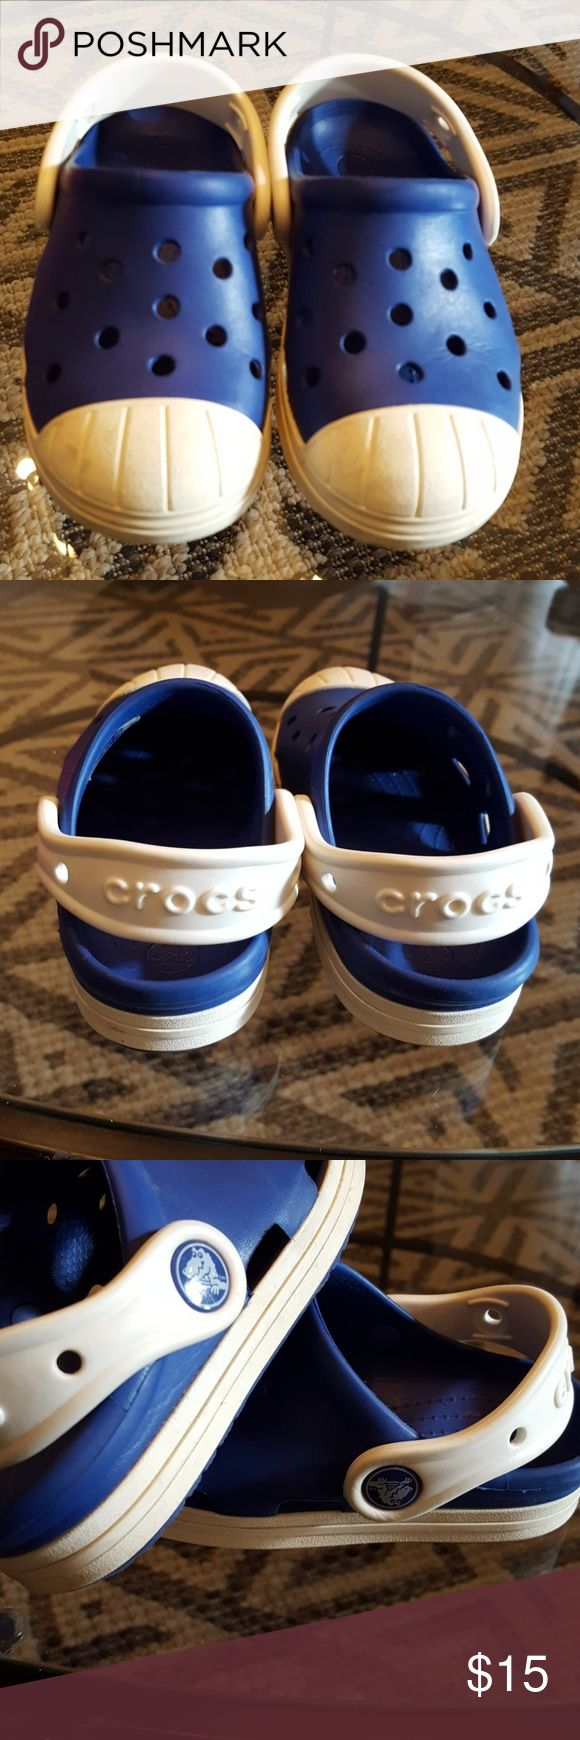 Blue Crocs size 9 kids These Crocs are in excellent condition.  Only worn a few times inside.  Colors are Royal Blue and White.  Perfect for boy or girl.  What a fun way to enjoy Spring and Summer in these durable and stylish shoes. CROCS Shoes Sandals & Flip Flops